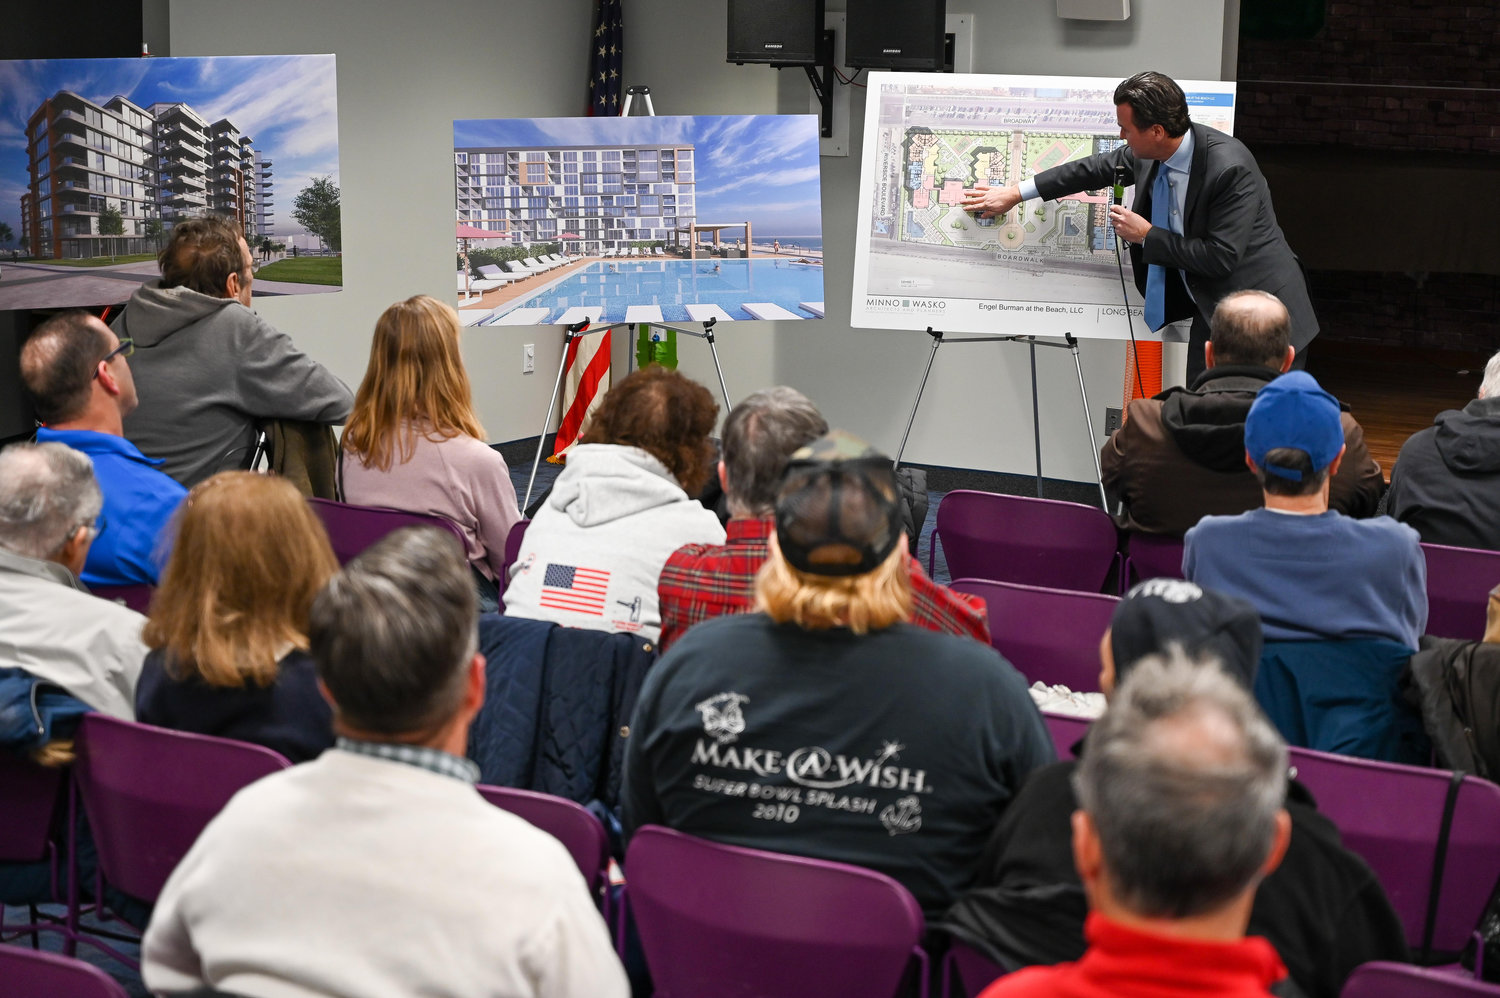 Daniel Deegan, an attorney for Engel Burman, went over the details of the project with Long Beach residents.